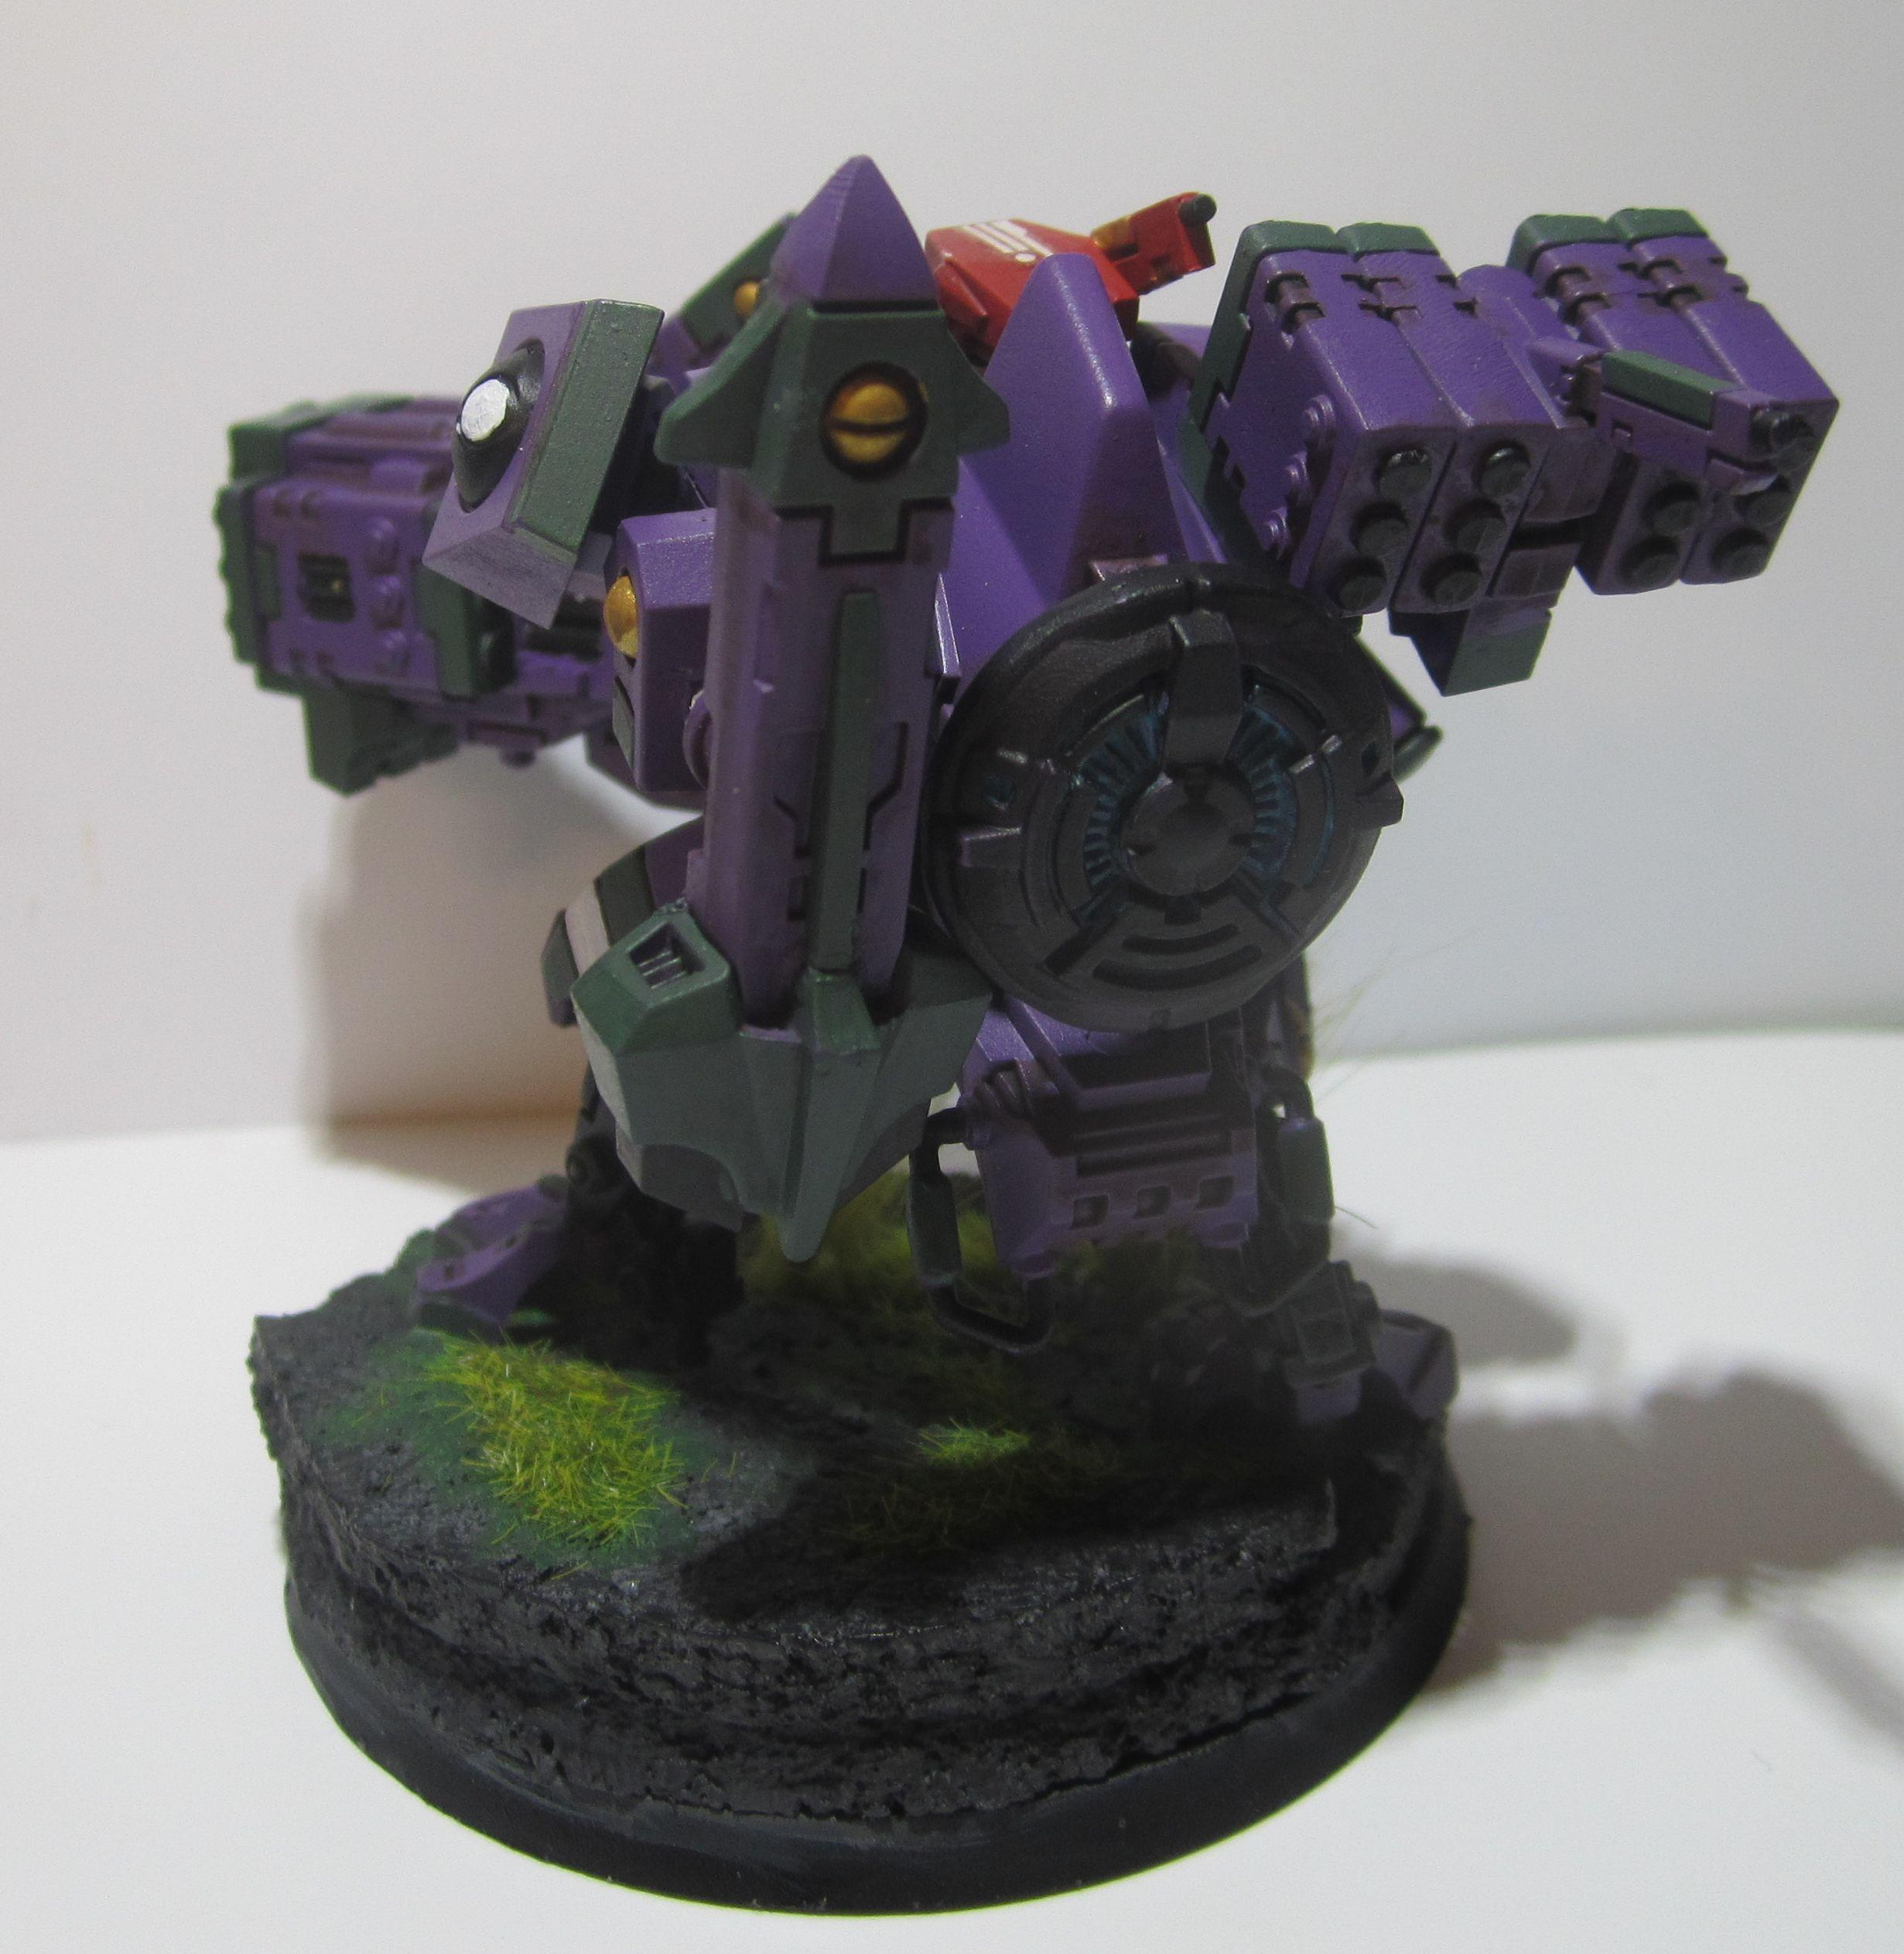 Army, Broadsides, Conversion, Tau, Warhammer 40,000, Xv-88